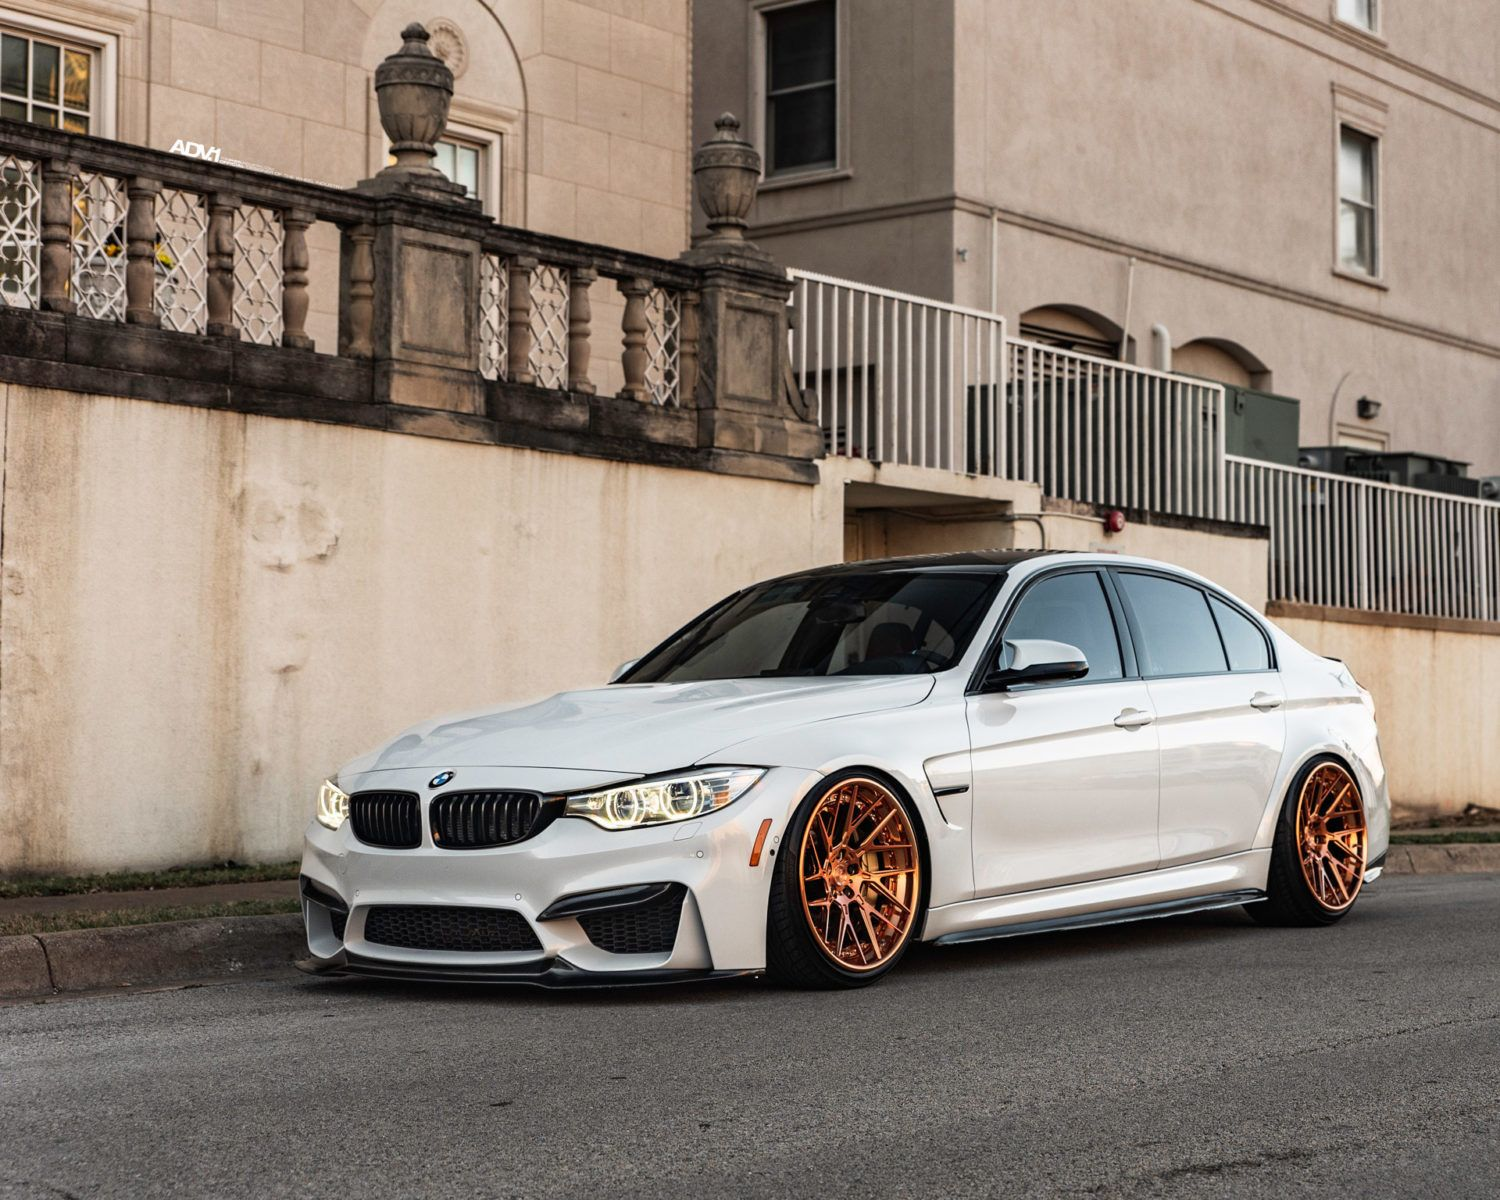 Alpine White Bmw F80 M3 Adv8r Track Spec Cs Wheels In 2020 Bmw